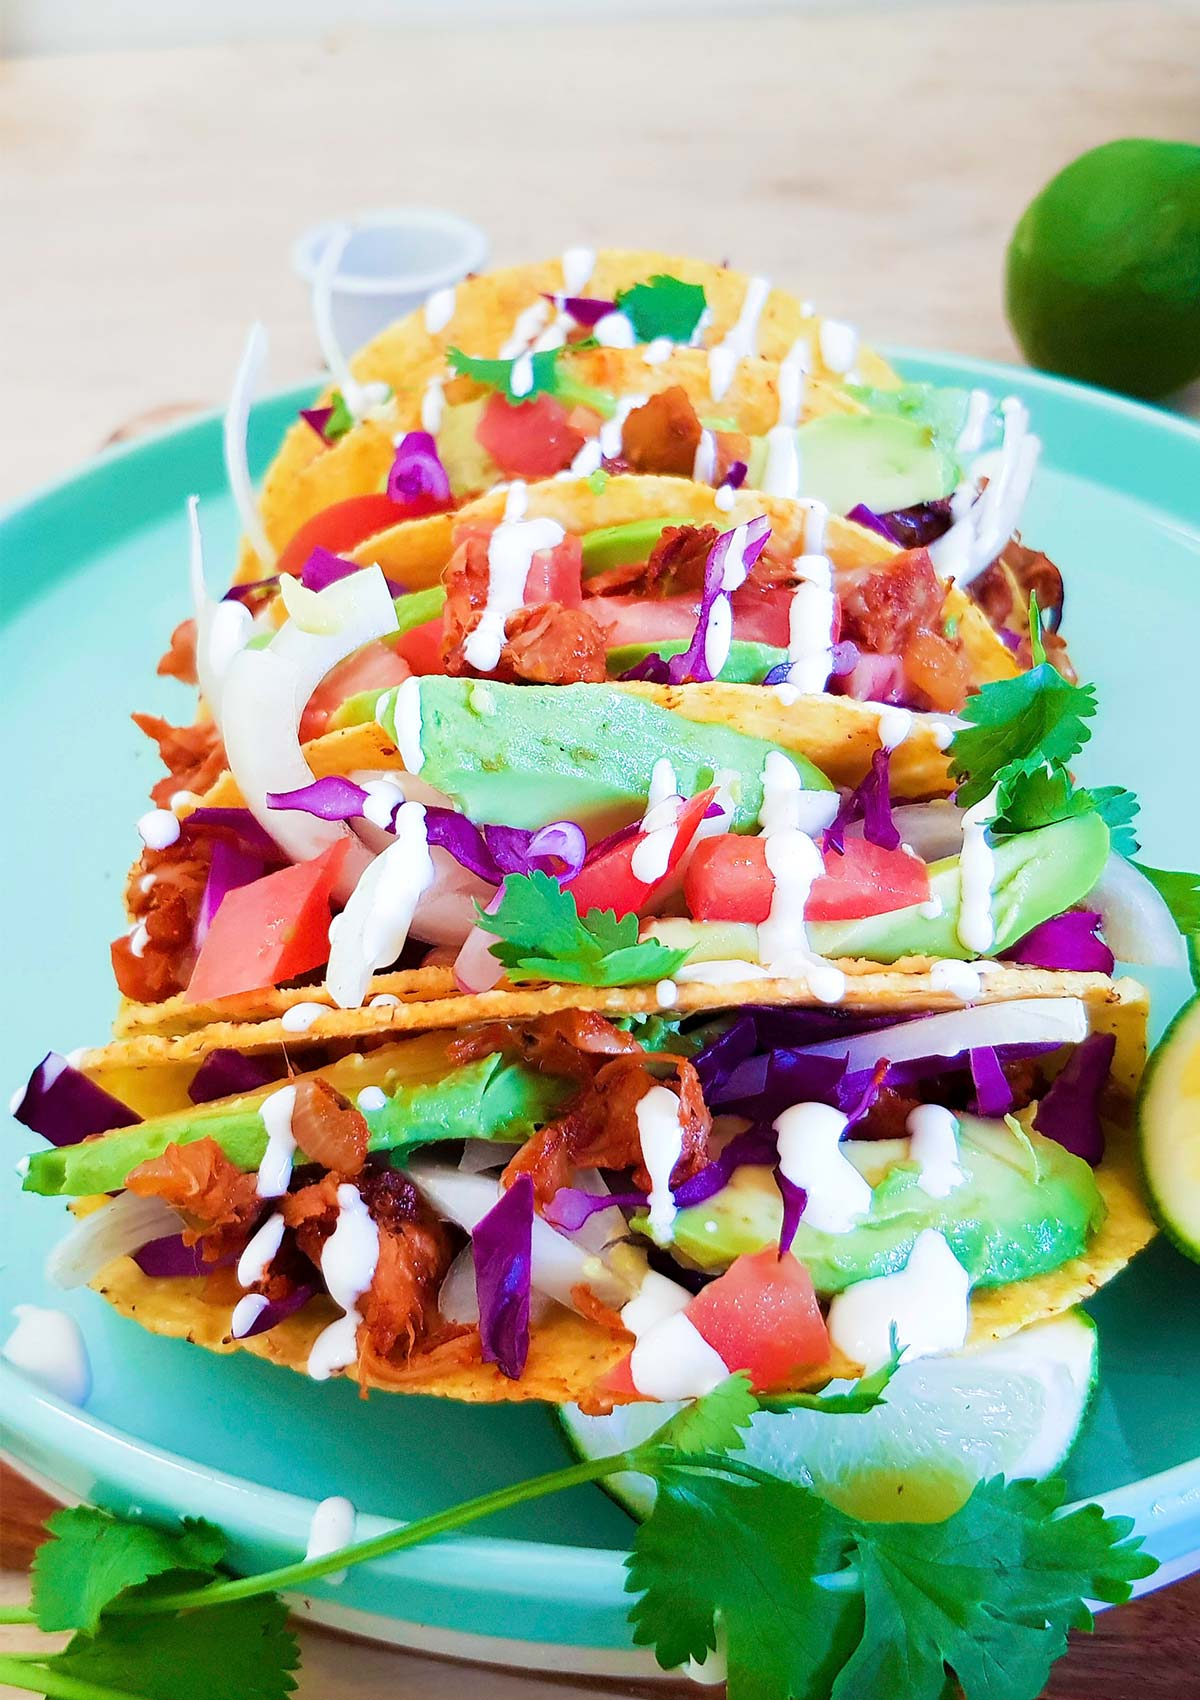 Hard shell tacos filled with pulled jackfruit meat, avocado,and cabbage.